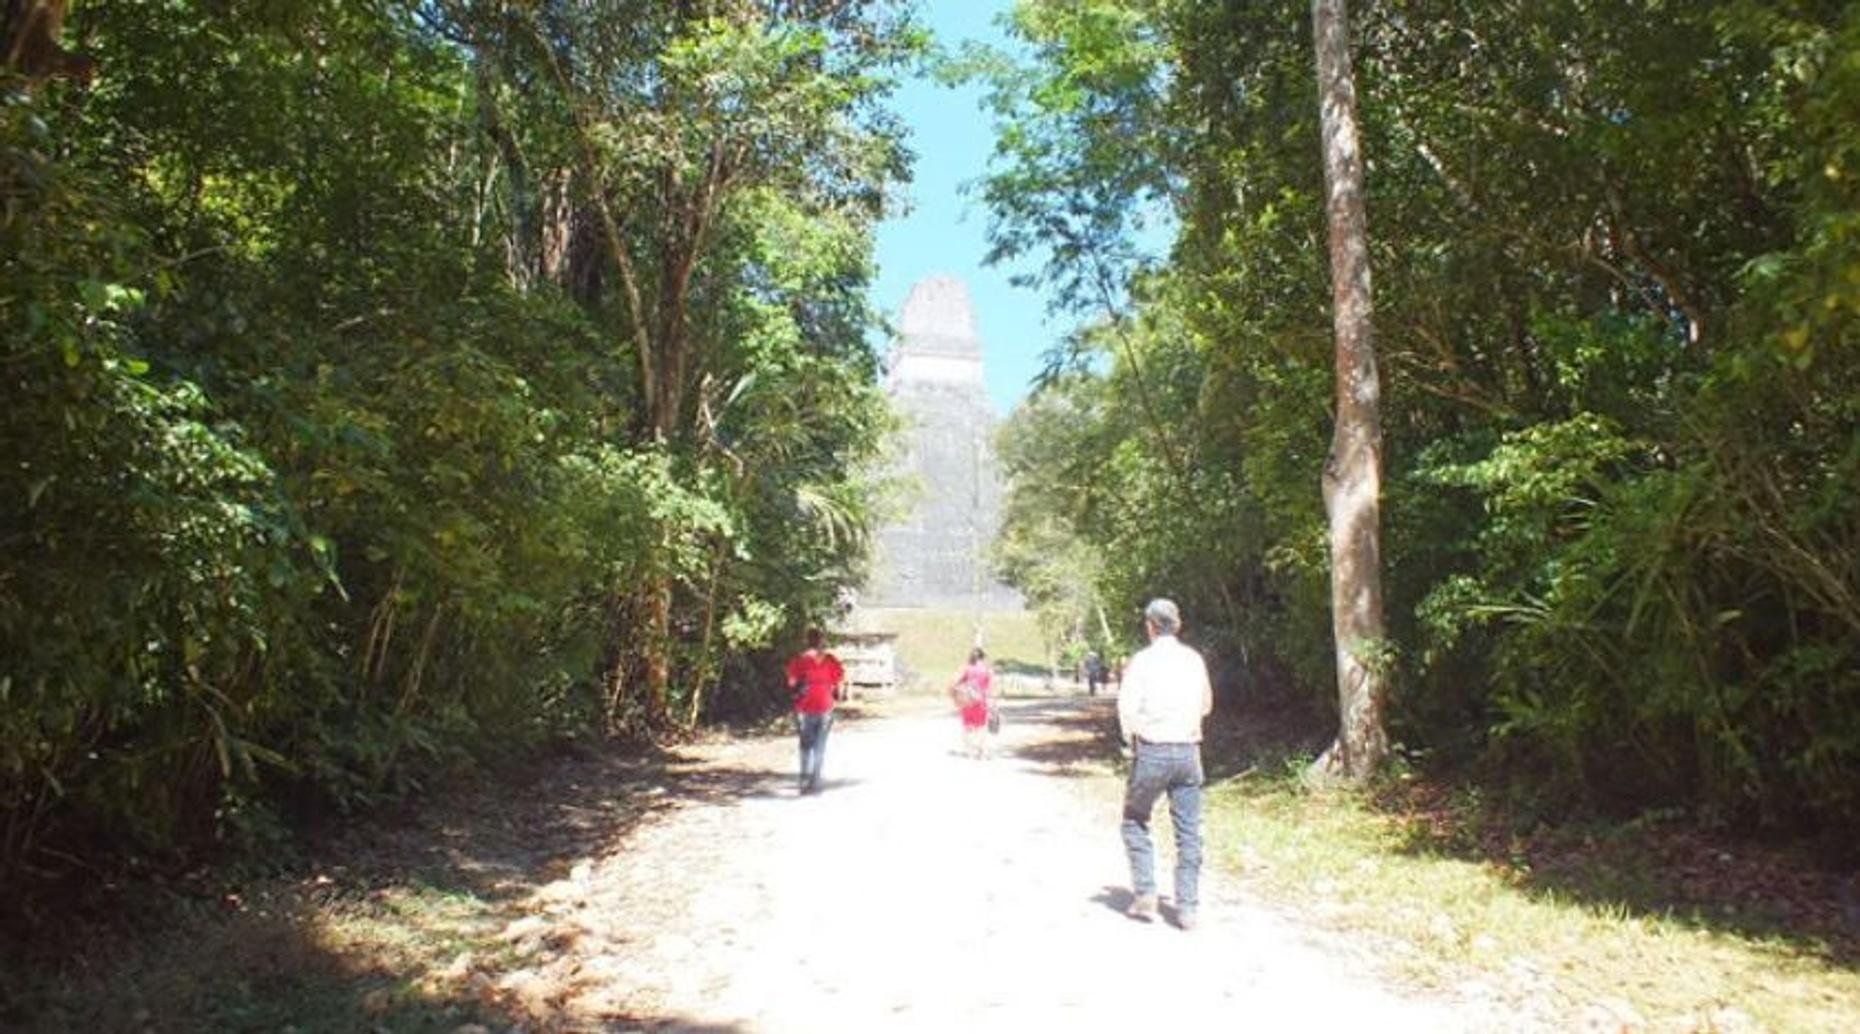 Early-Day Tour of the Tikal Ruins